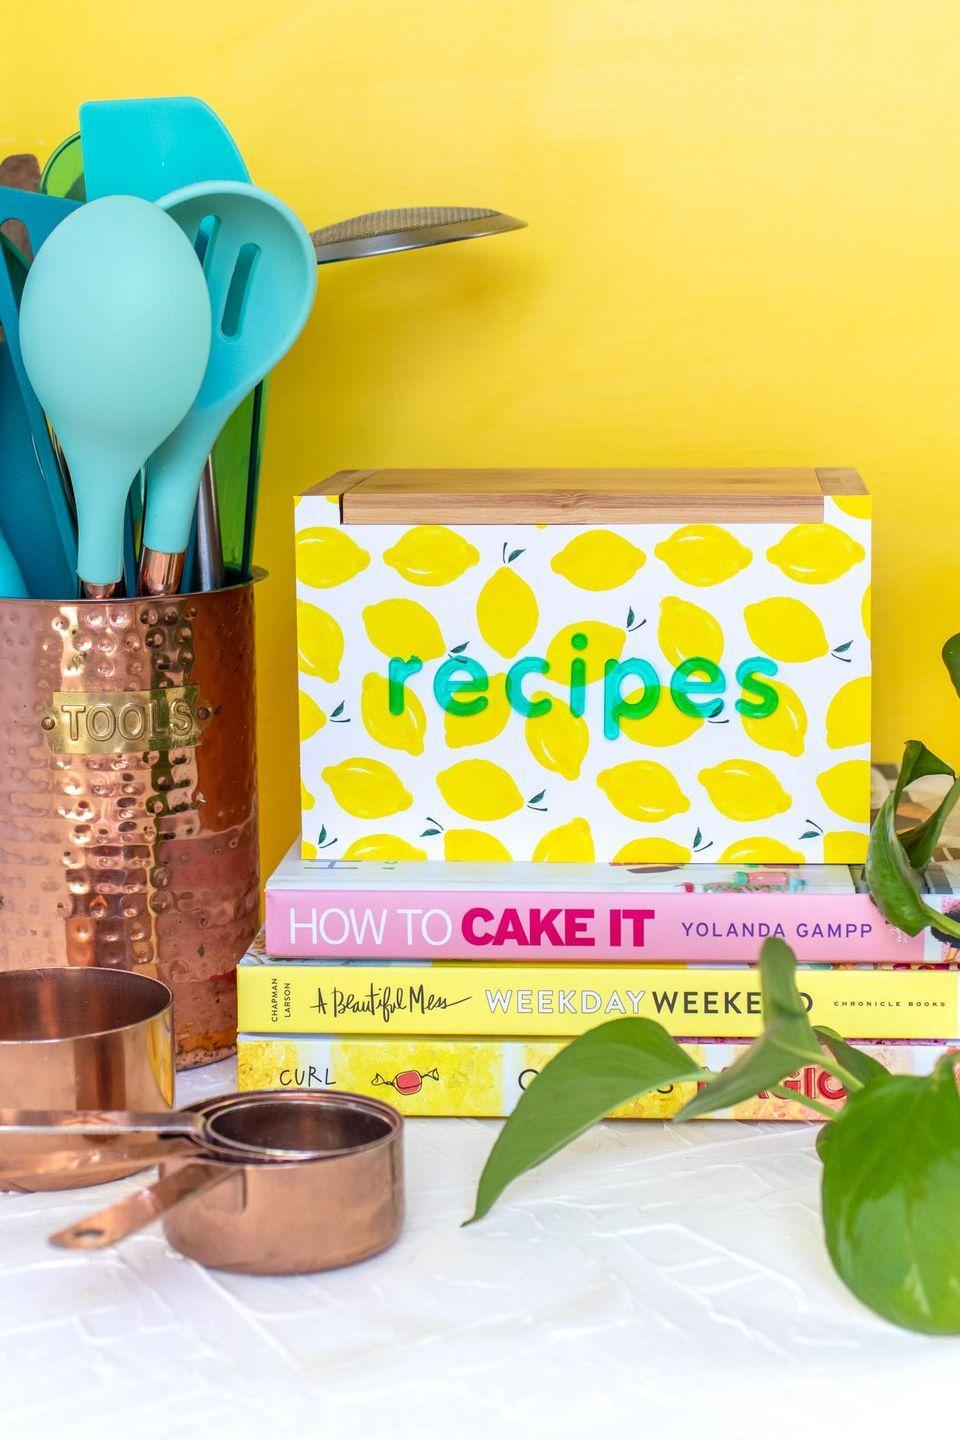 "<p>It may be what's on the inside that counts (decades of family recipes), but make the exterior of your mom's recipe box just as statement-worthy with peel-and-stick wallpaper. </p><p><em><a href=""https://www.clubcrafted.com/recipe-box-makeover-wallpaper/"" rel=""nofollow noopener"" target=""_blank"" data-ylk=""slk:Get the tutorial at Club Crafted »"" class=""link rapid-noclick-resp"">Get the tutorial at Club Crafted »</a></em></p><p><strong>RELATED:</strong> <a href=""https://www.goodhousekeeping.com/holidays/mothers-day/g511/mothers-day-gifts/"" rel=""nofollow noopener"" target=""_blank"" data-ylk=""slk:The Best Mother's Day Gifts to Give"" class=""link rapid-noclick-resp"">The Best Mother's Day Gifts to Give </a><br></p>"